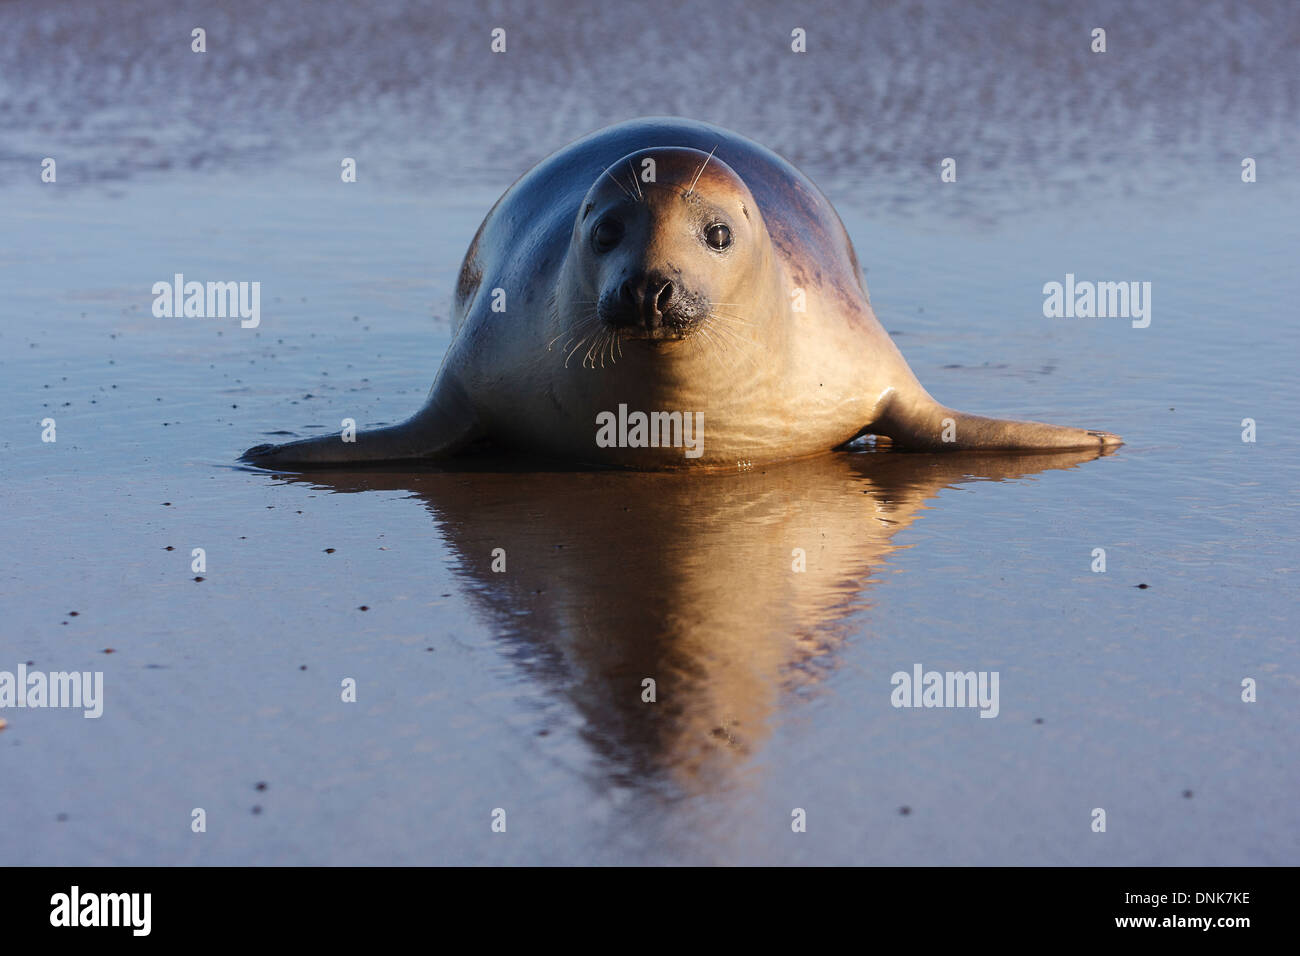 Seal gray (Halichoerus grypus) Donna Nook National Nature Reserve, Lincolnshile, England, U.K., Europe - Stock Image